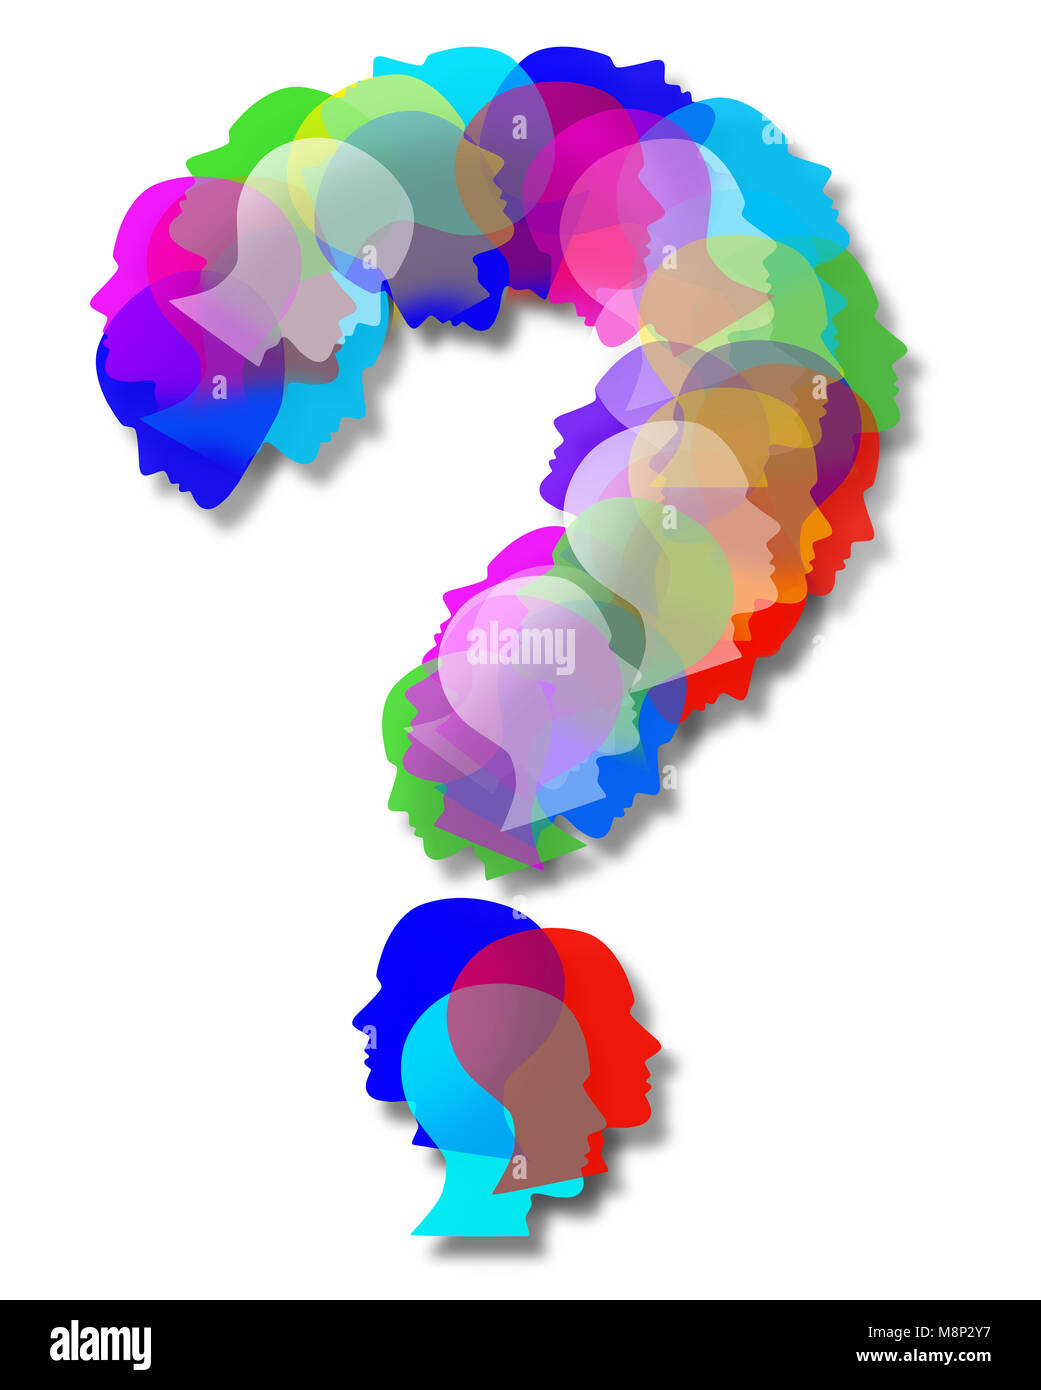 People questions as an abstract population shaped as a question mark as a symbol for society and diversity choices - Stock Image